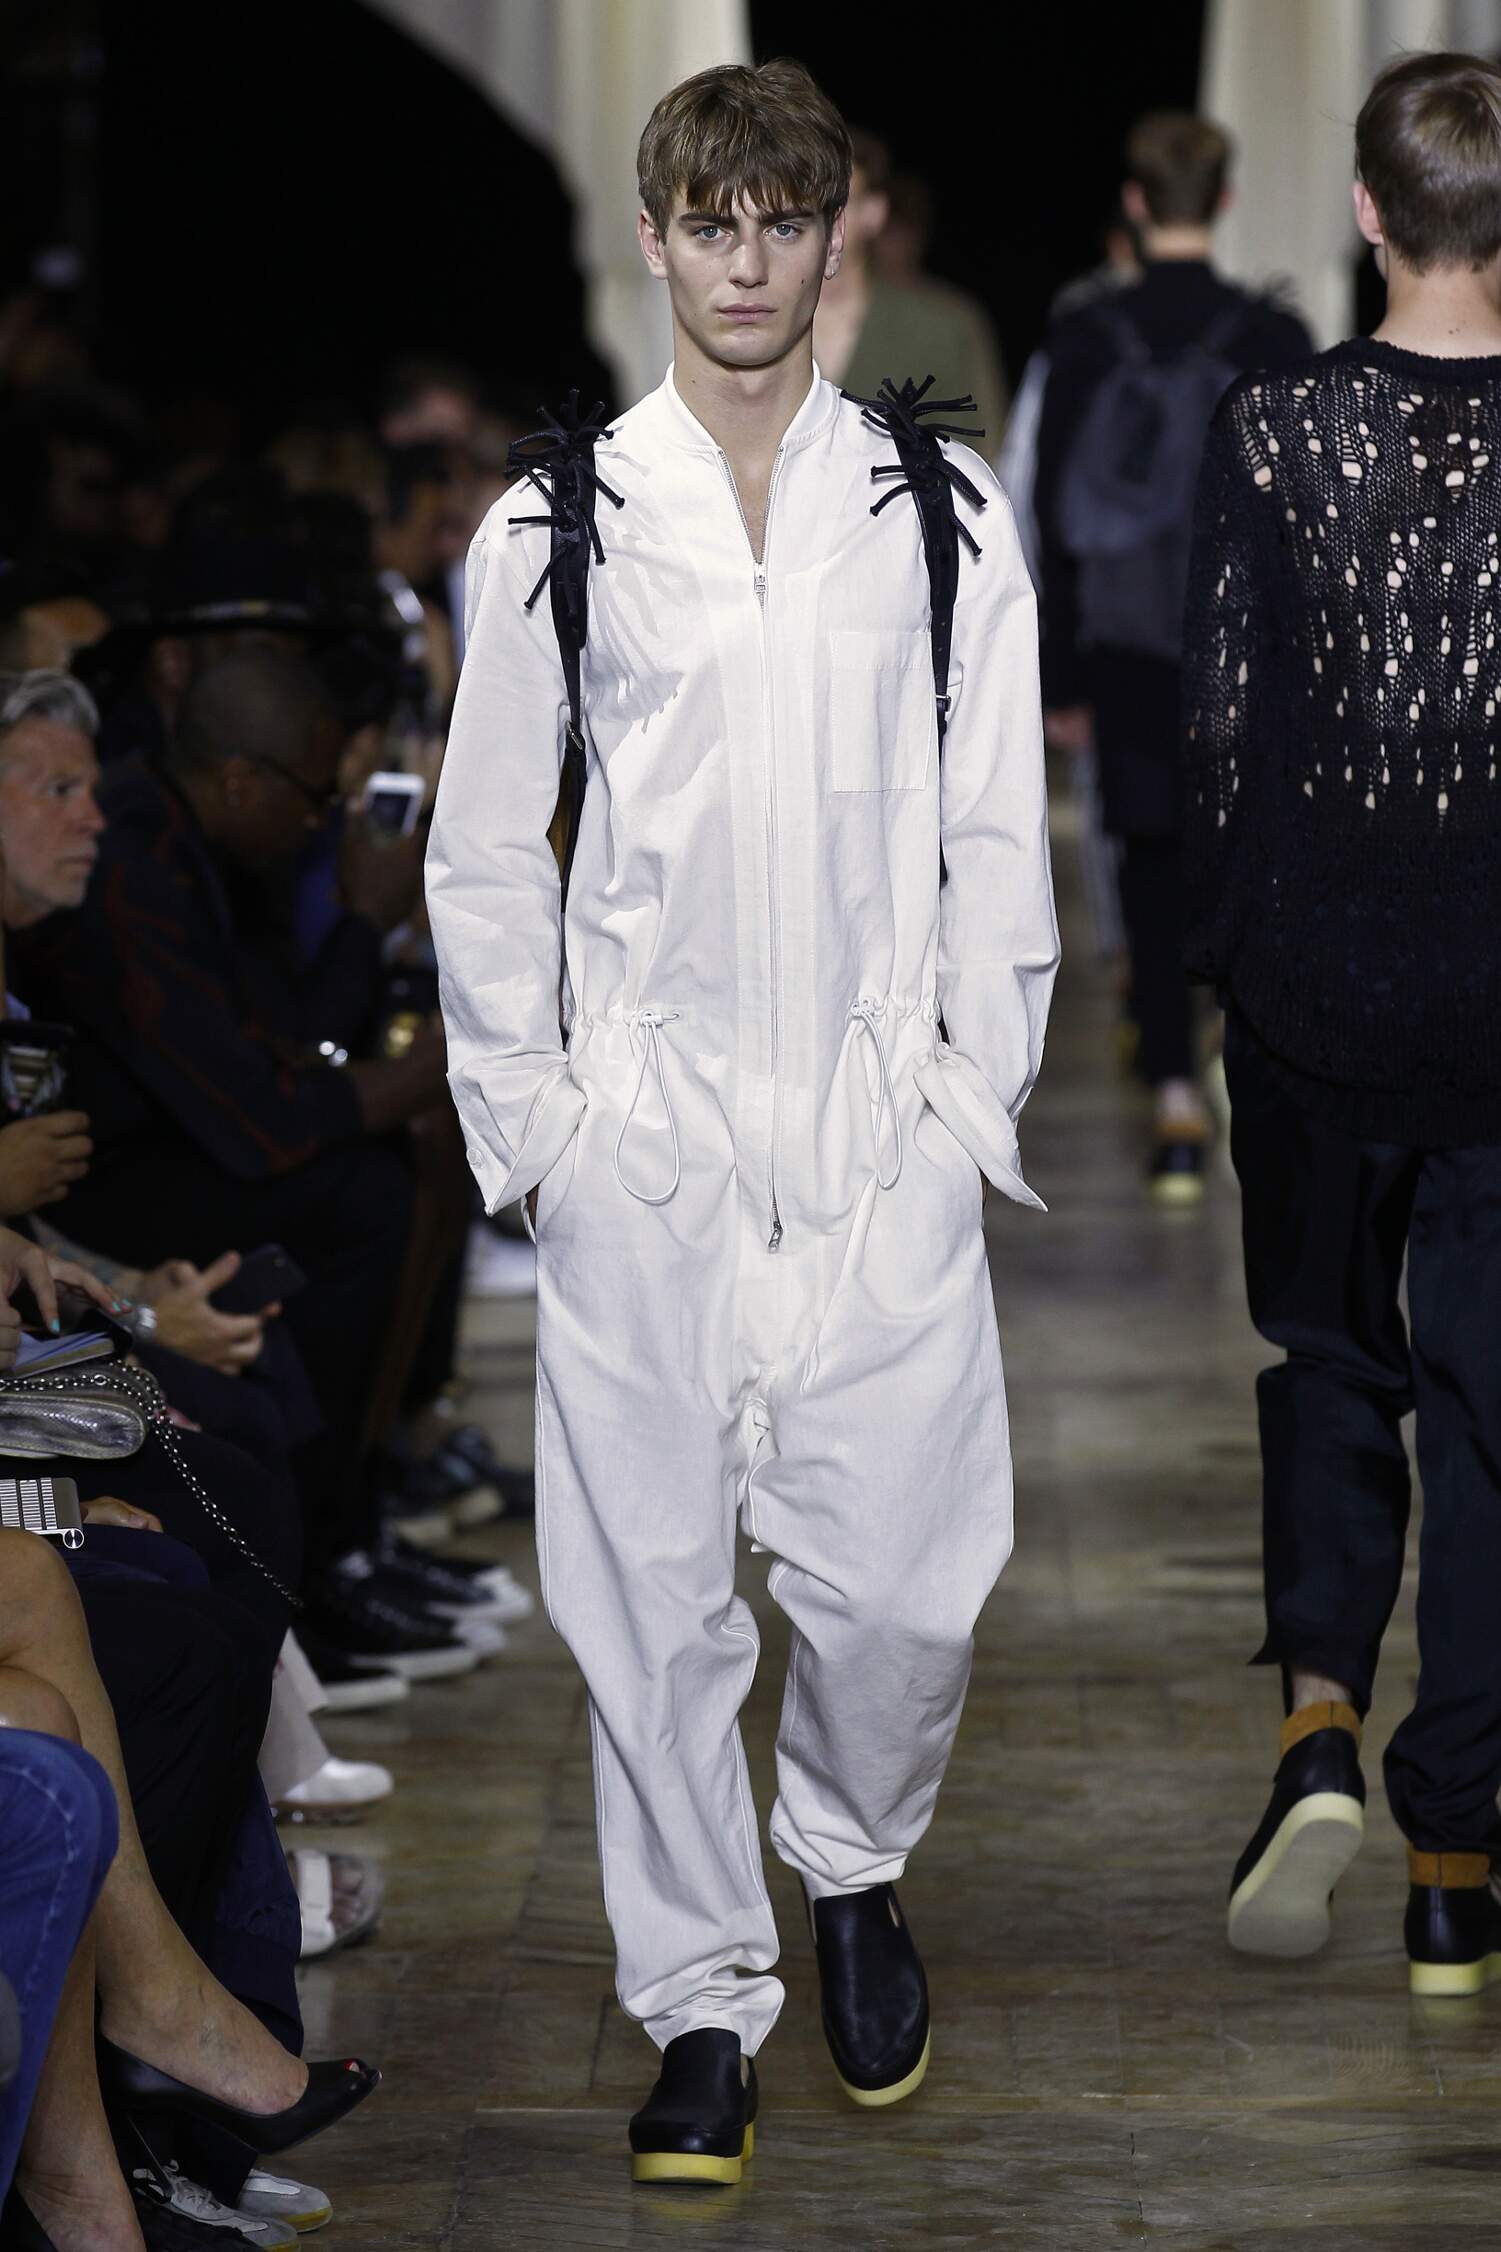 Catwalk Phillip Lim Menswear Collection Summer 2016